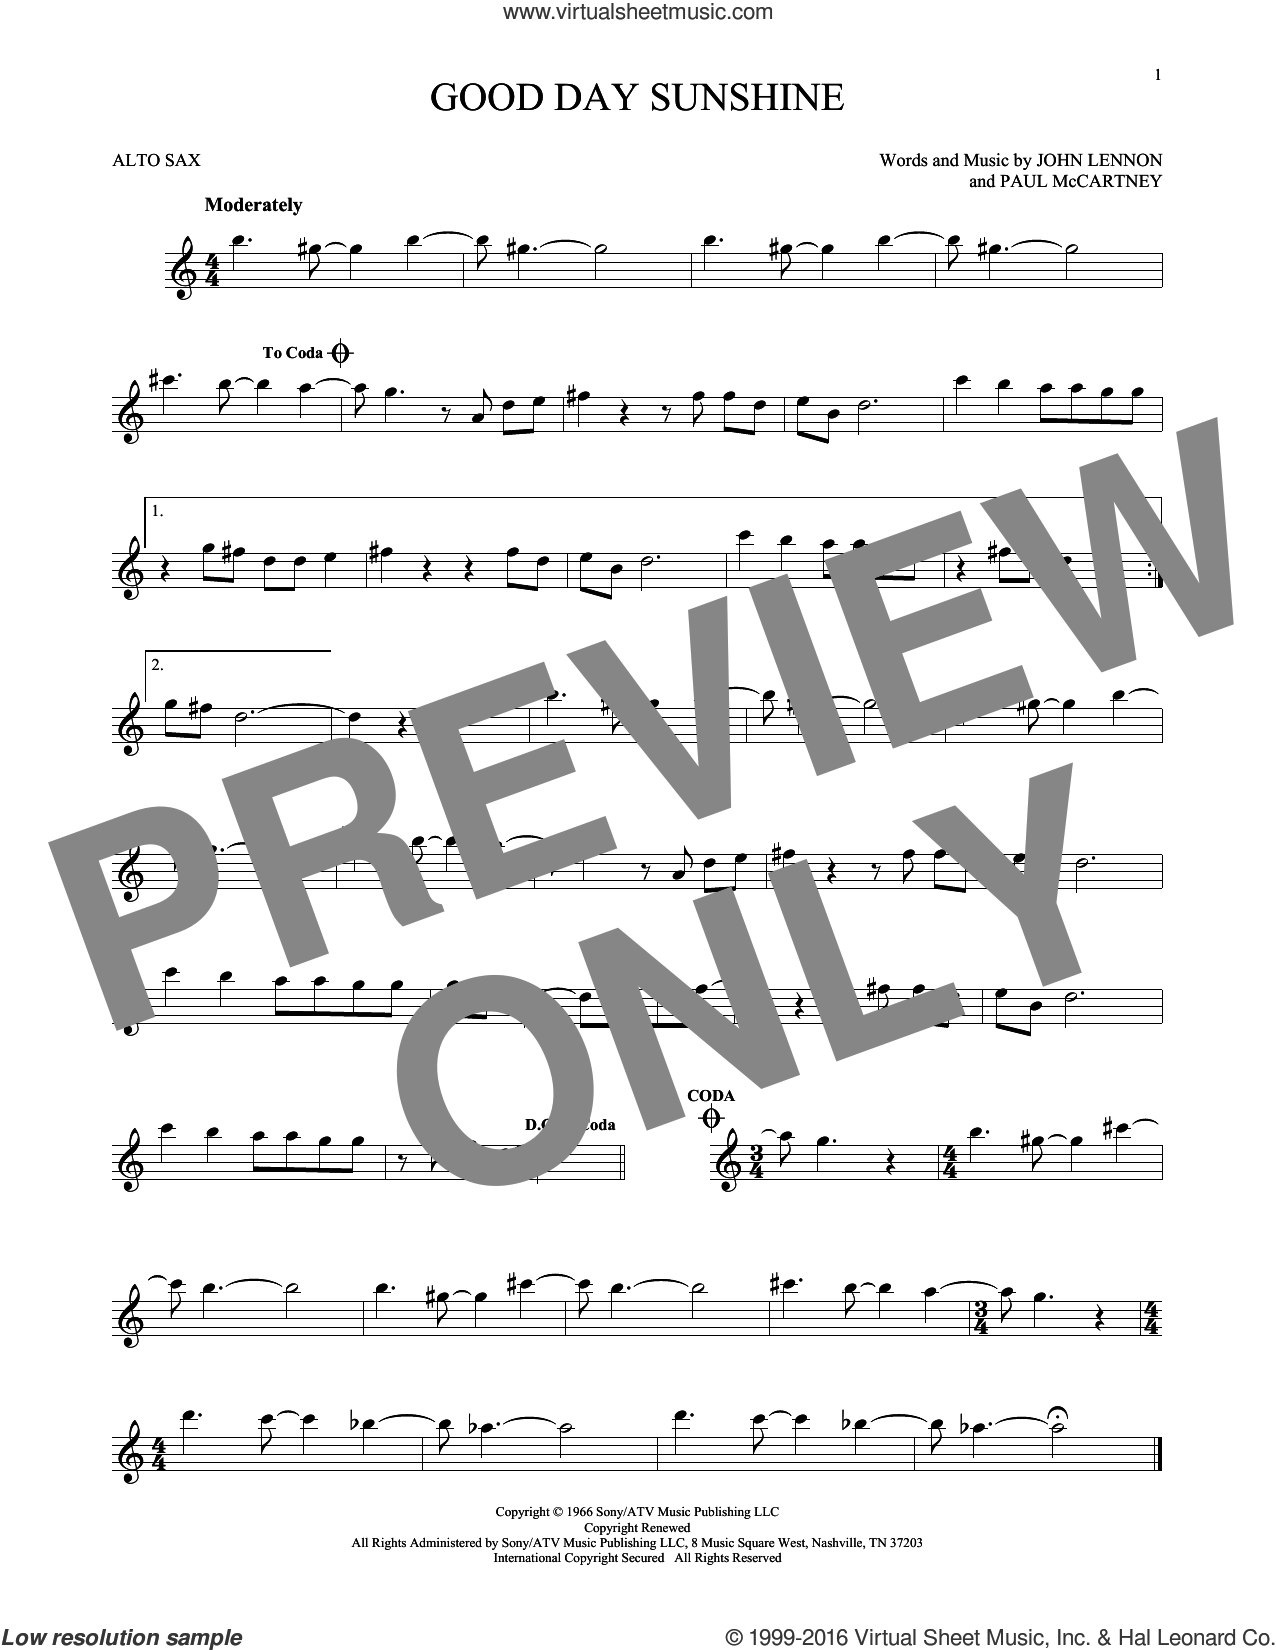 Good Day Sunshine sheet music for alto saxophone solo by The Beatles, John Lennon and Paul McCartney, intermediate skill level